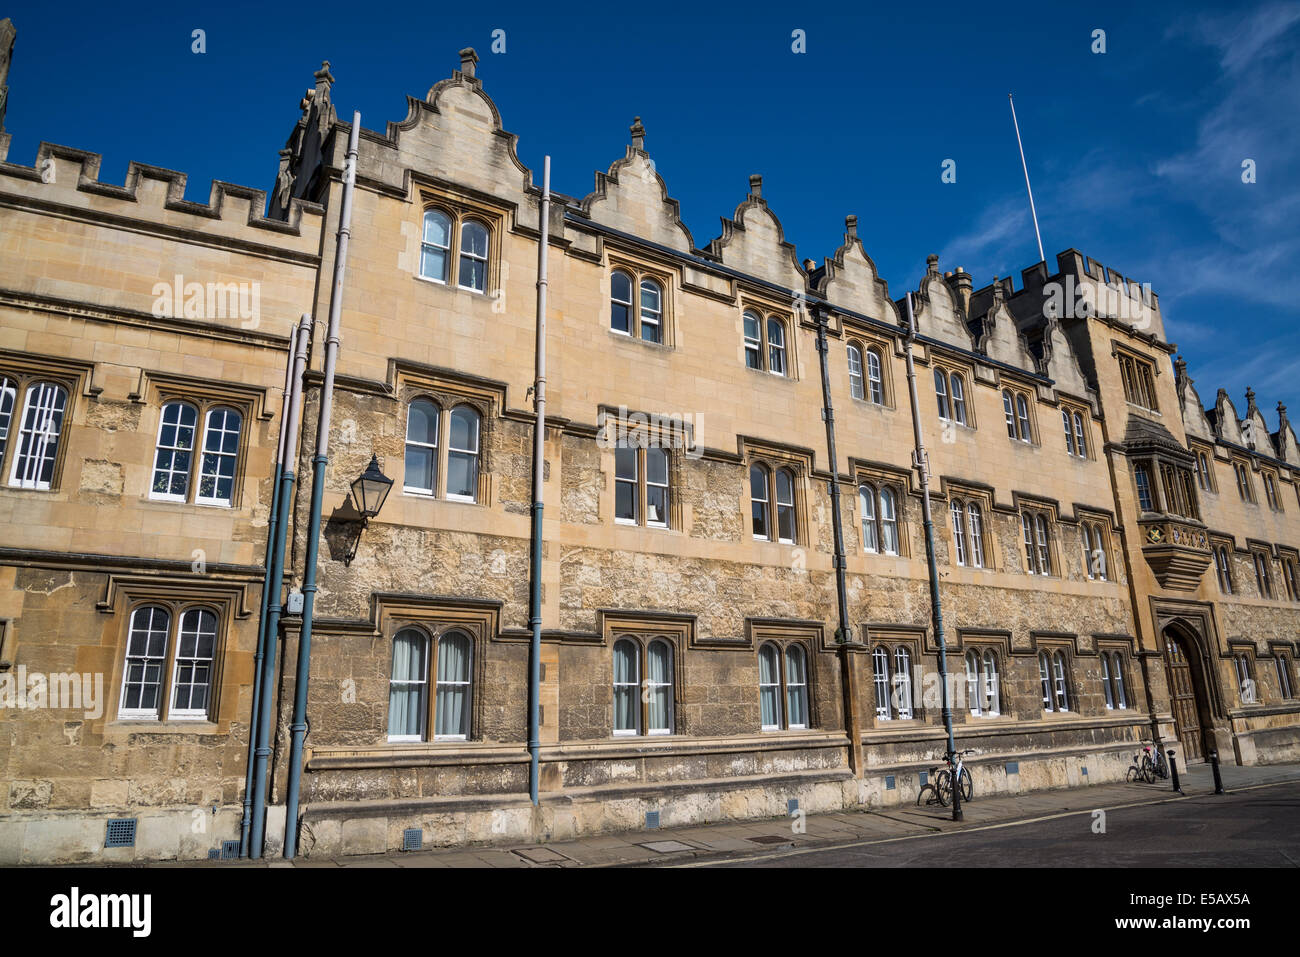 Oriel College, Oxford, England, UK - Stock Image